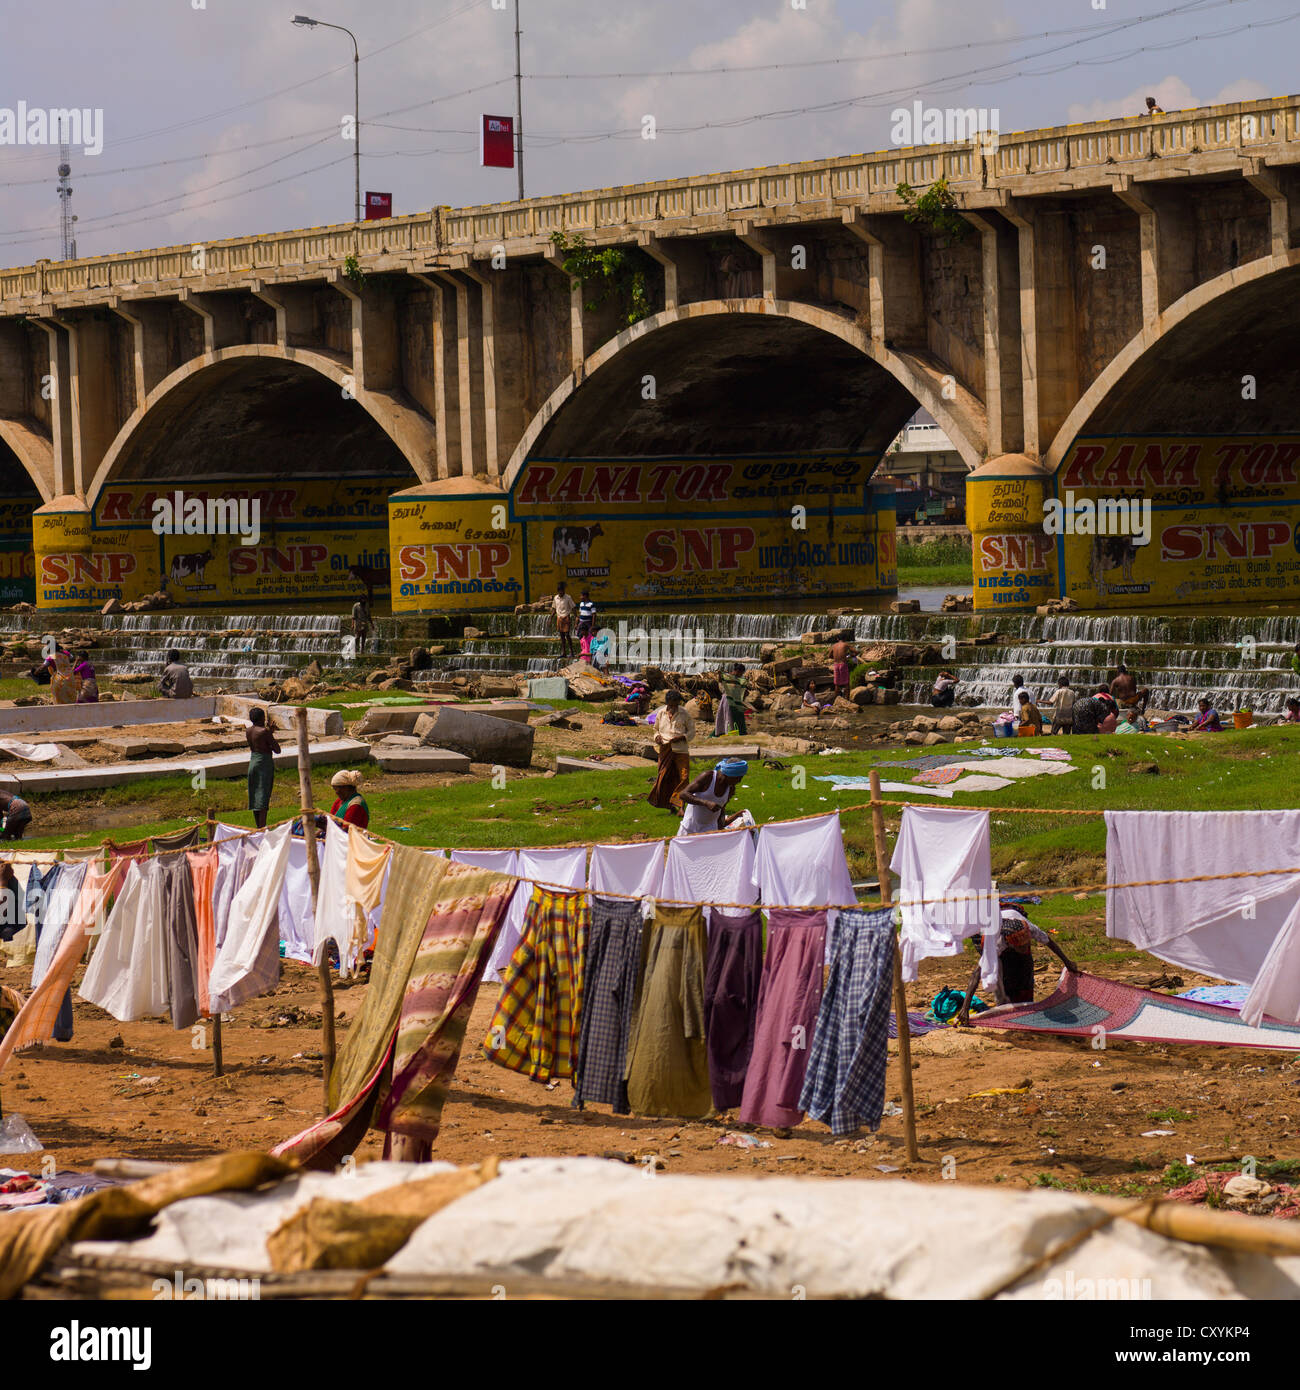 People Washing And Putting Dry Clothes Under A Painted Bridge, Madurai, India - Stock Image